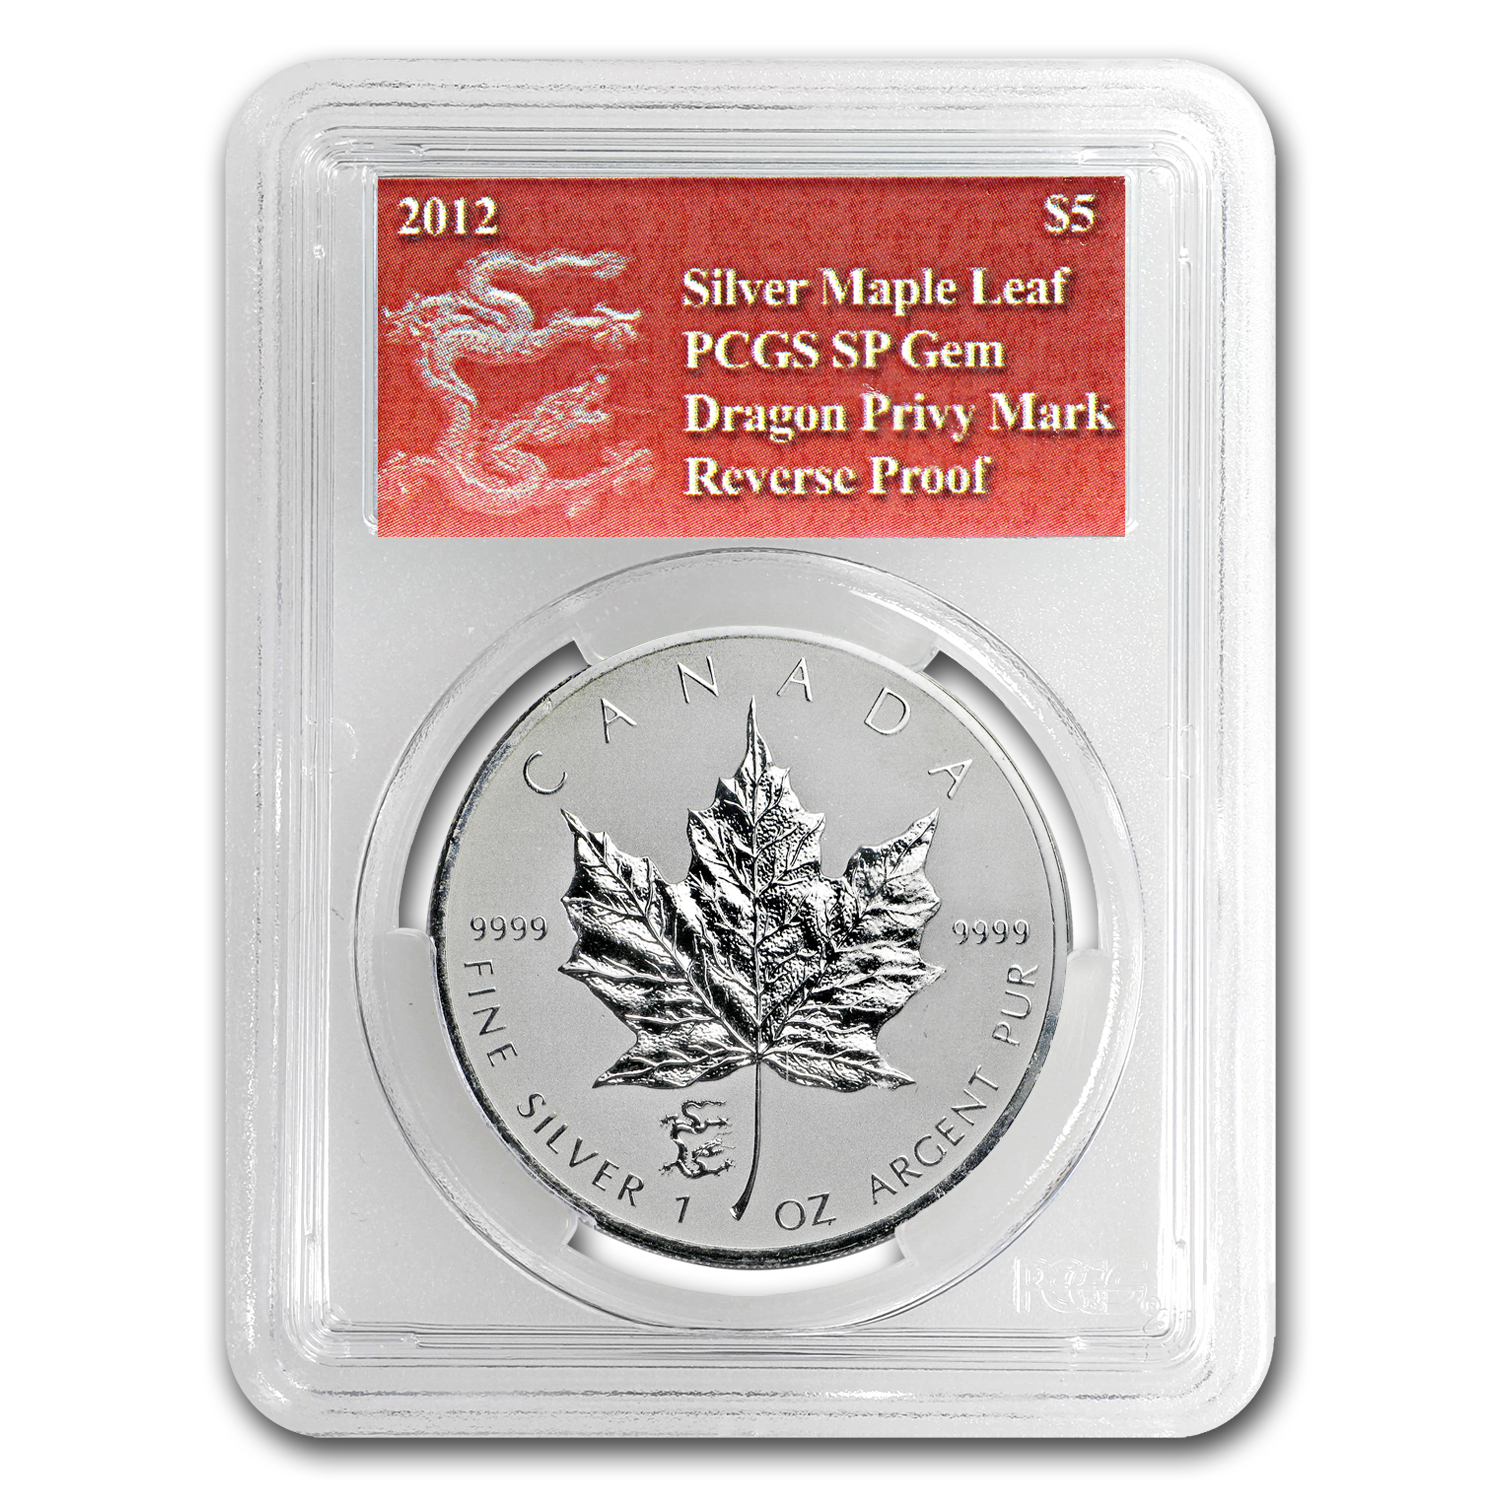 2012 1 oz Silver Canadian Maple Leaf Dragon Privy - SP GEM PCGS